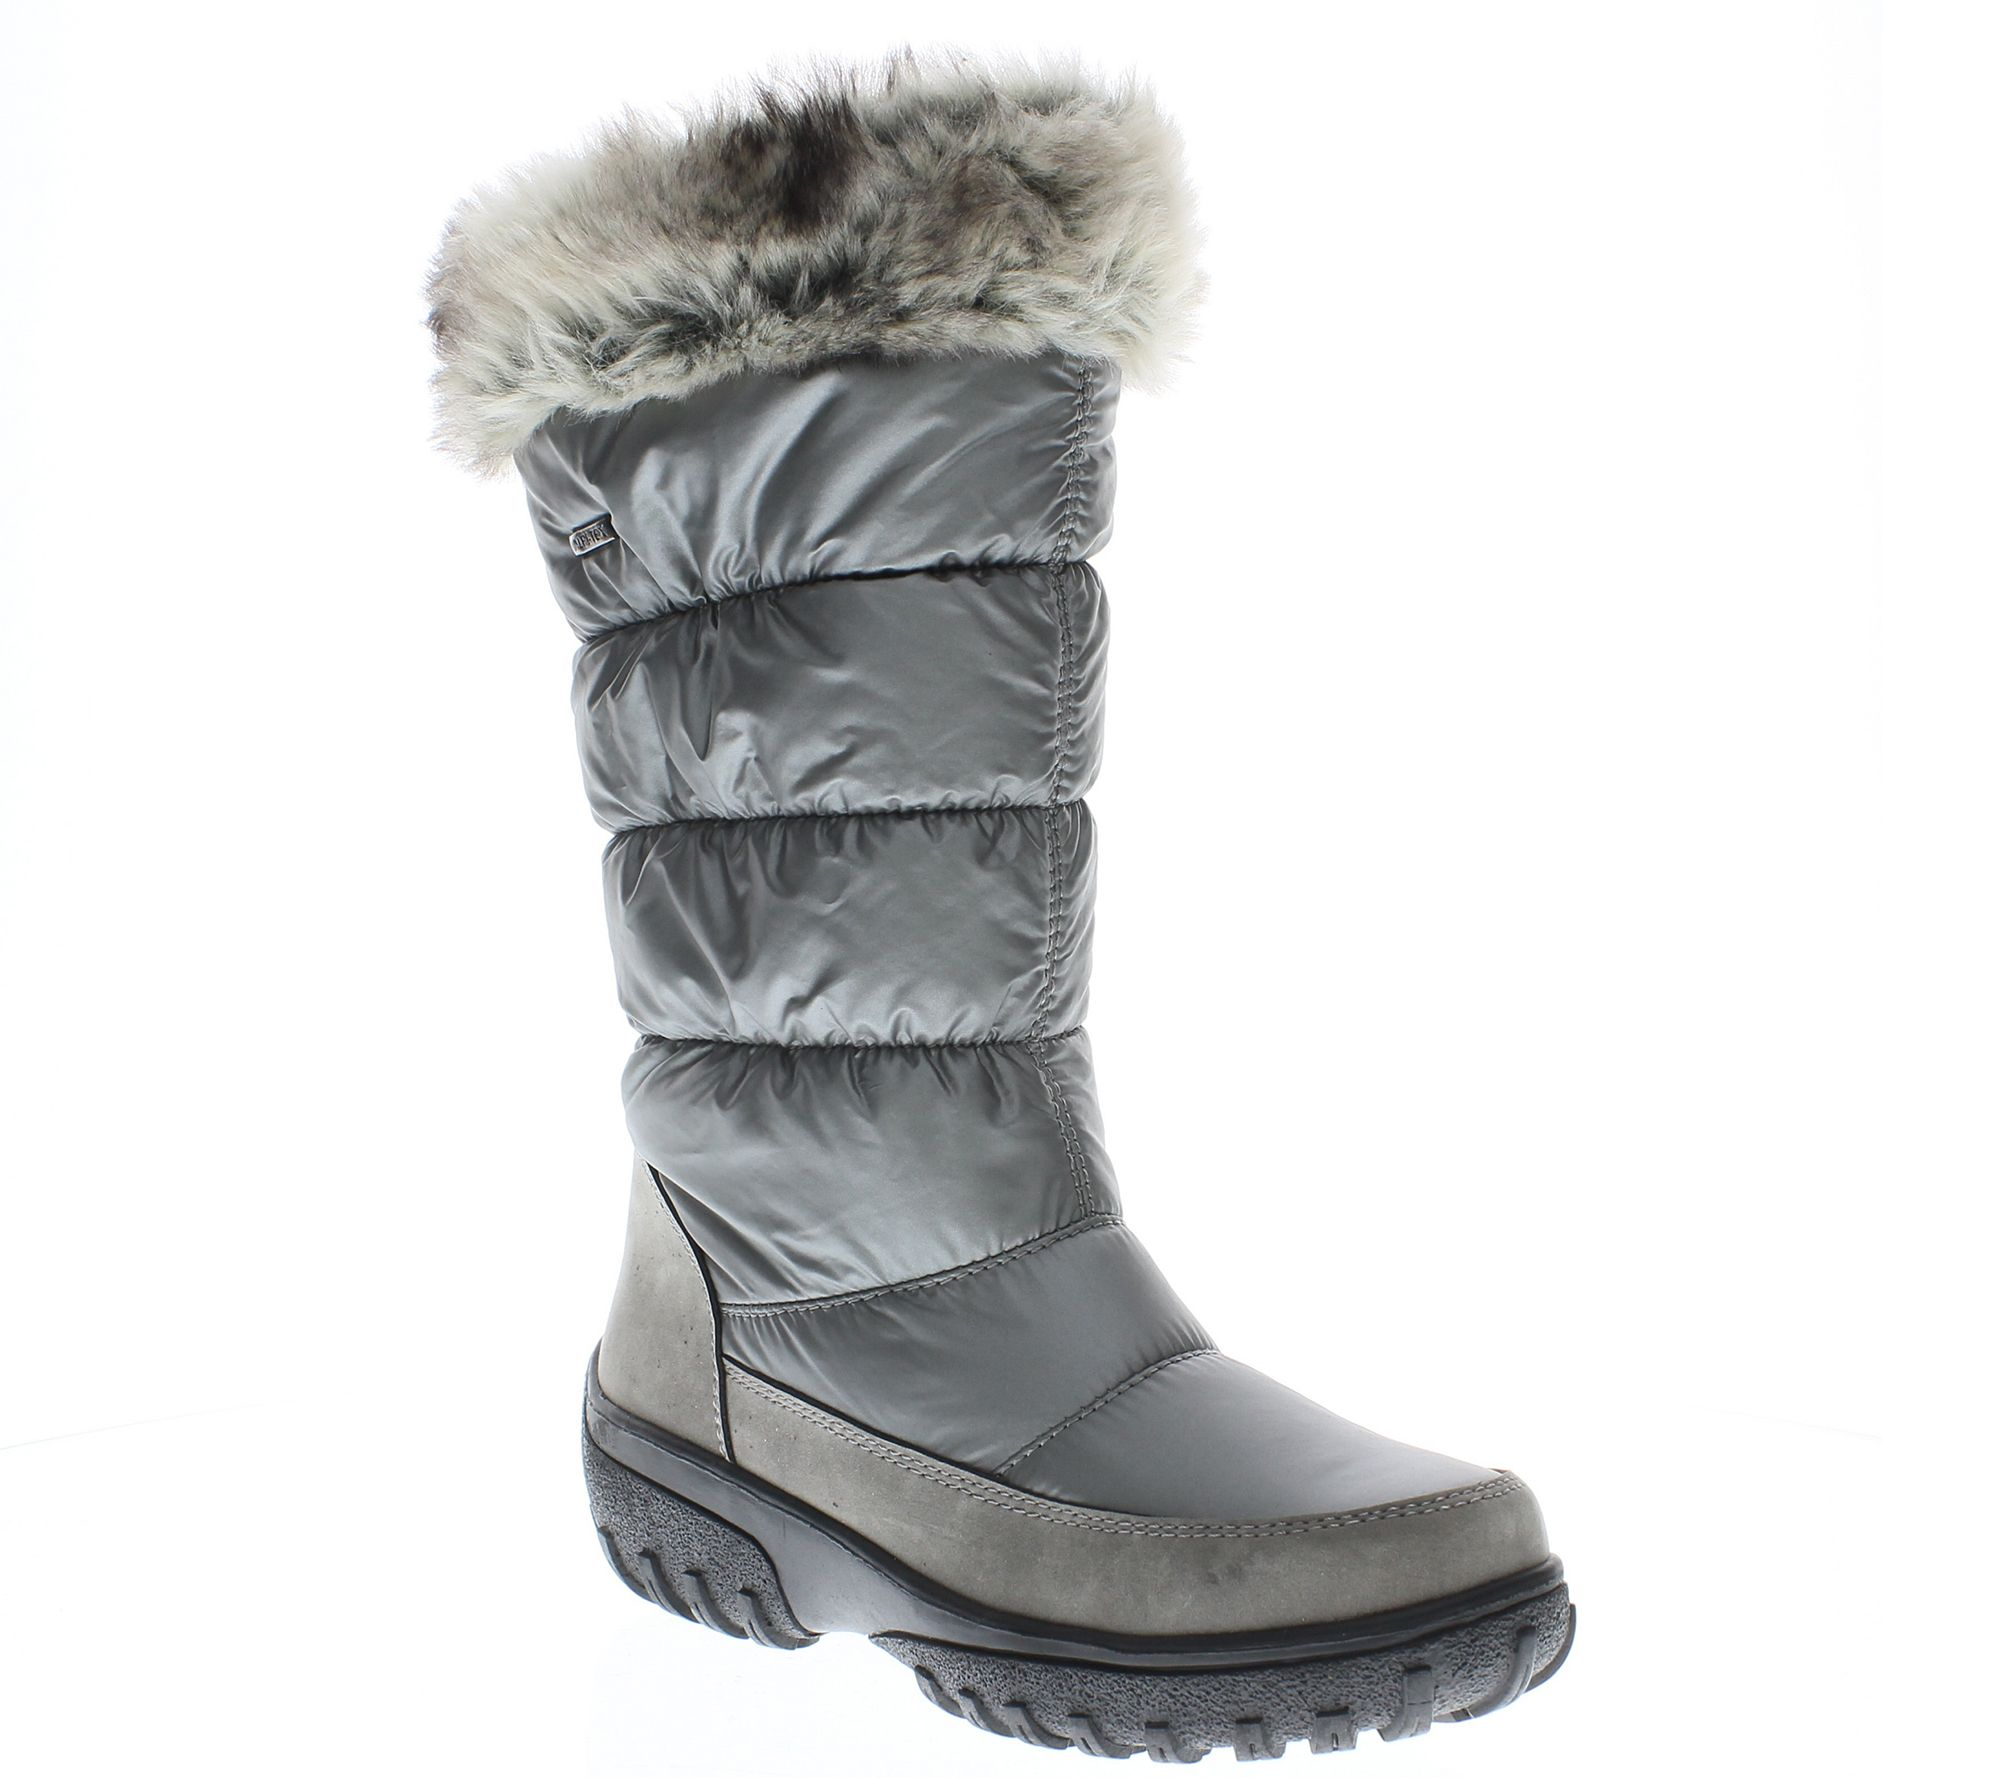 Spring Step Nylon Waterproof Winter Boots Vanish Page